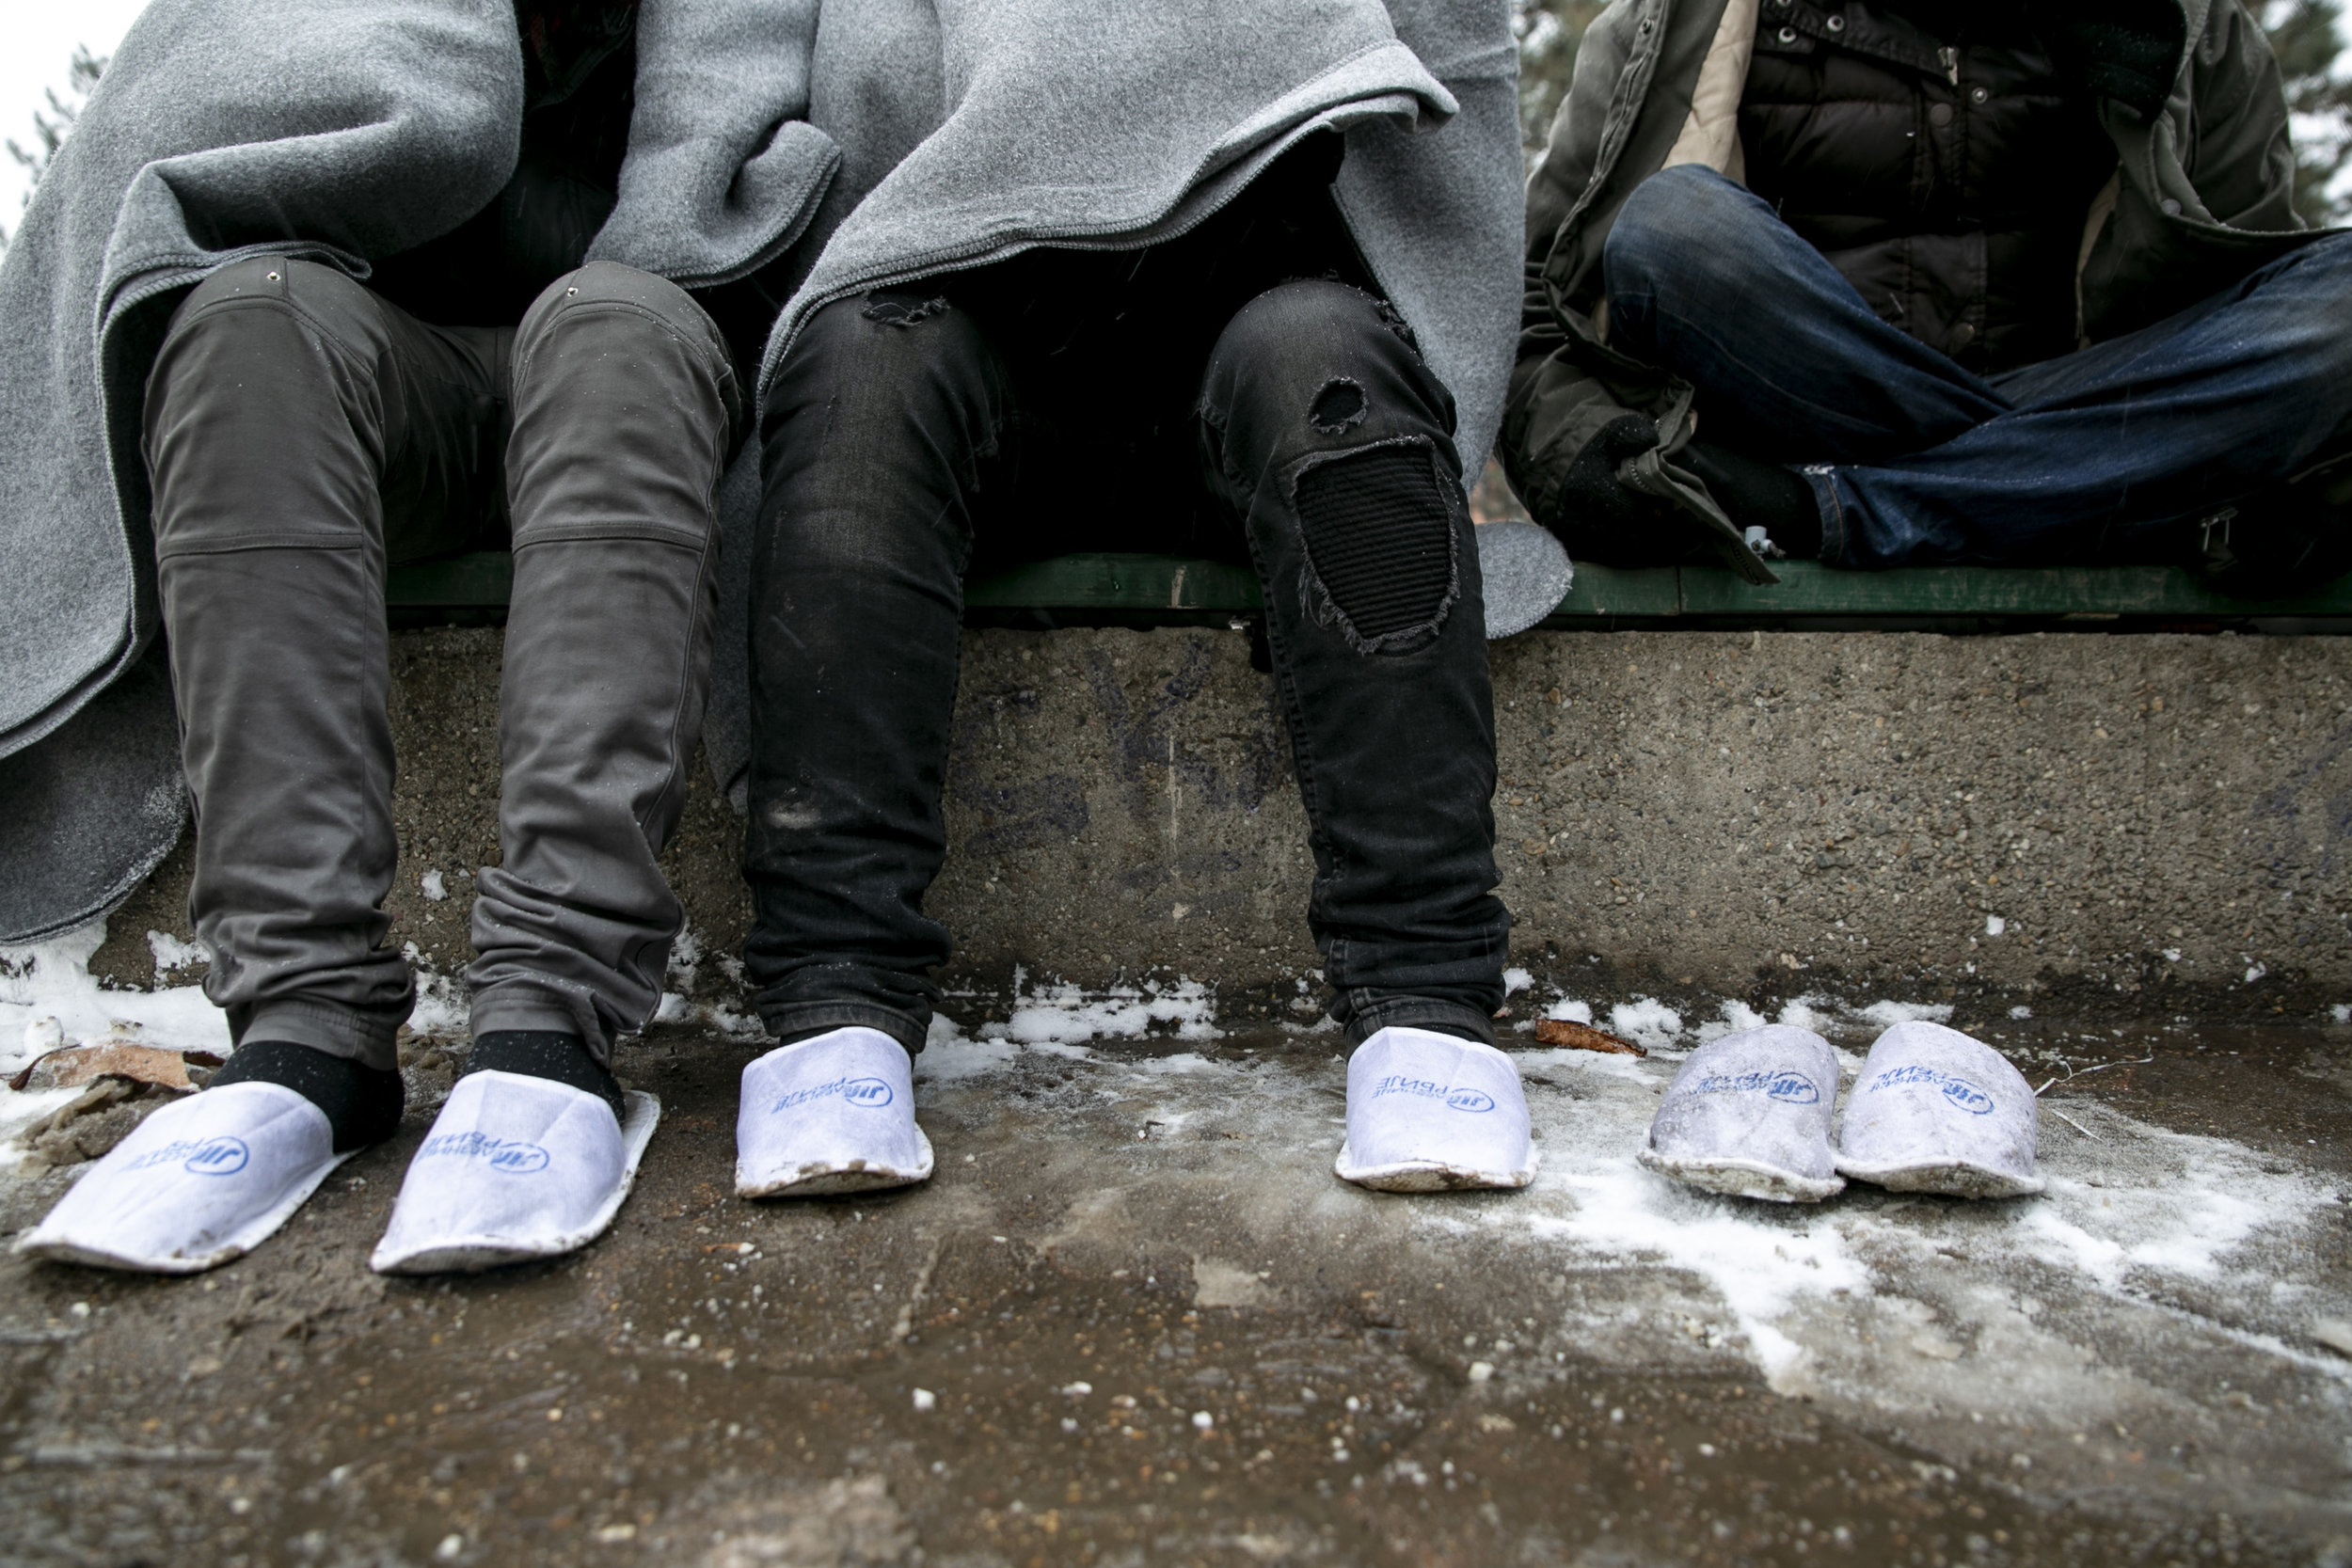 In below-freezing temperatures, paper slippers are supplied to refugees who's shoes were stolen by Hungarian border police. Belgrade, Serbia.